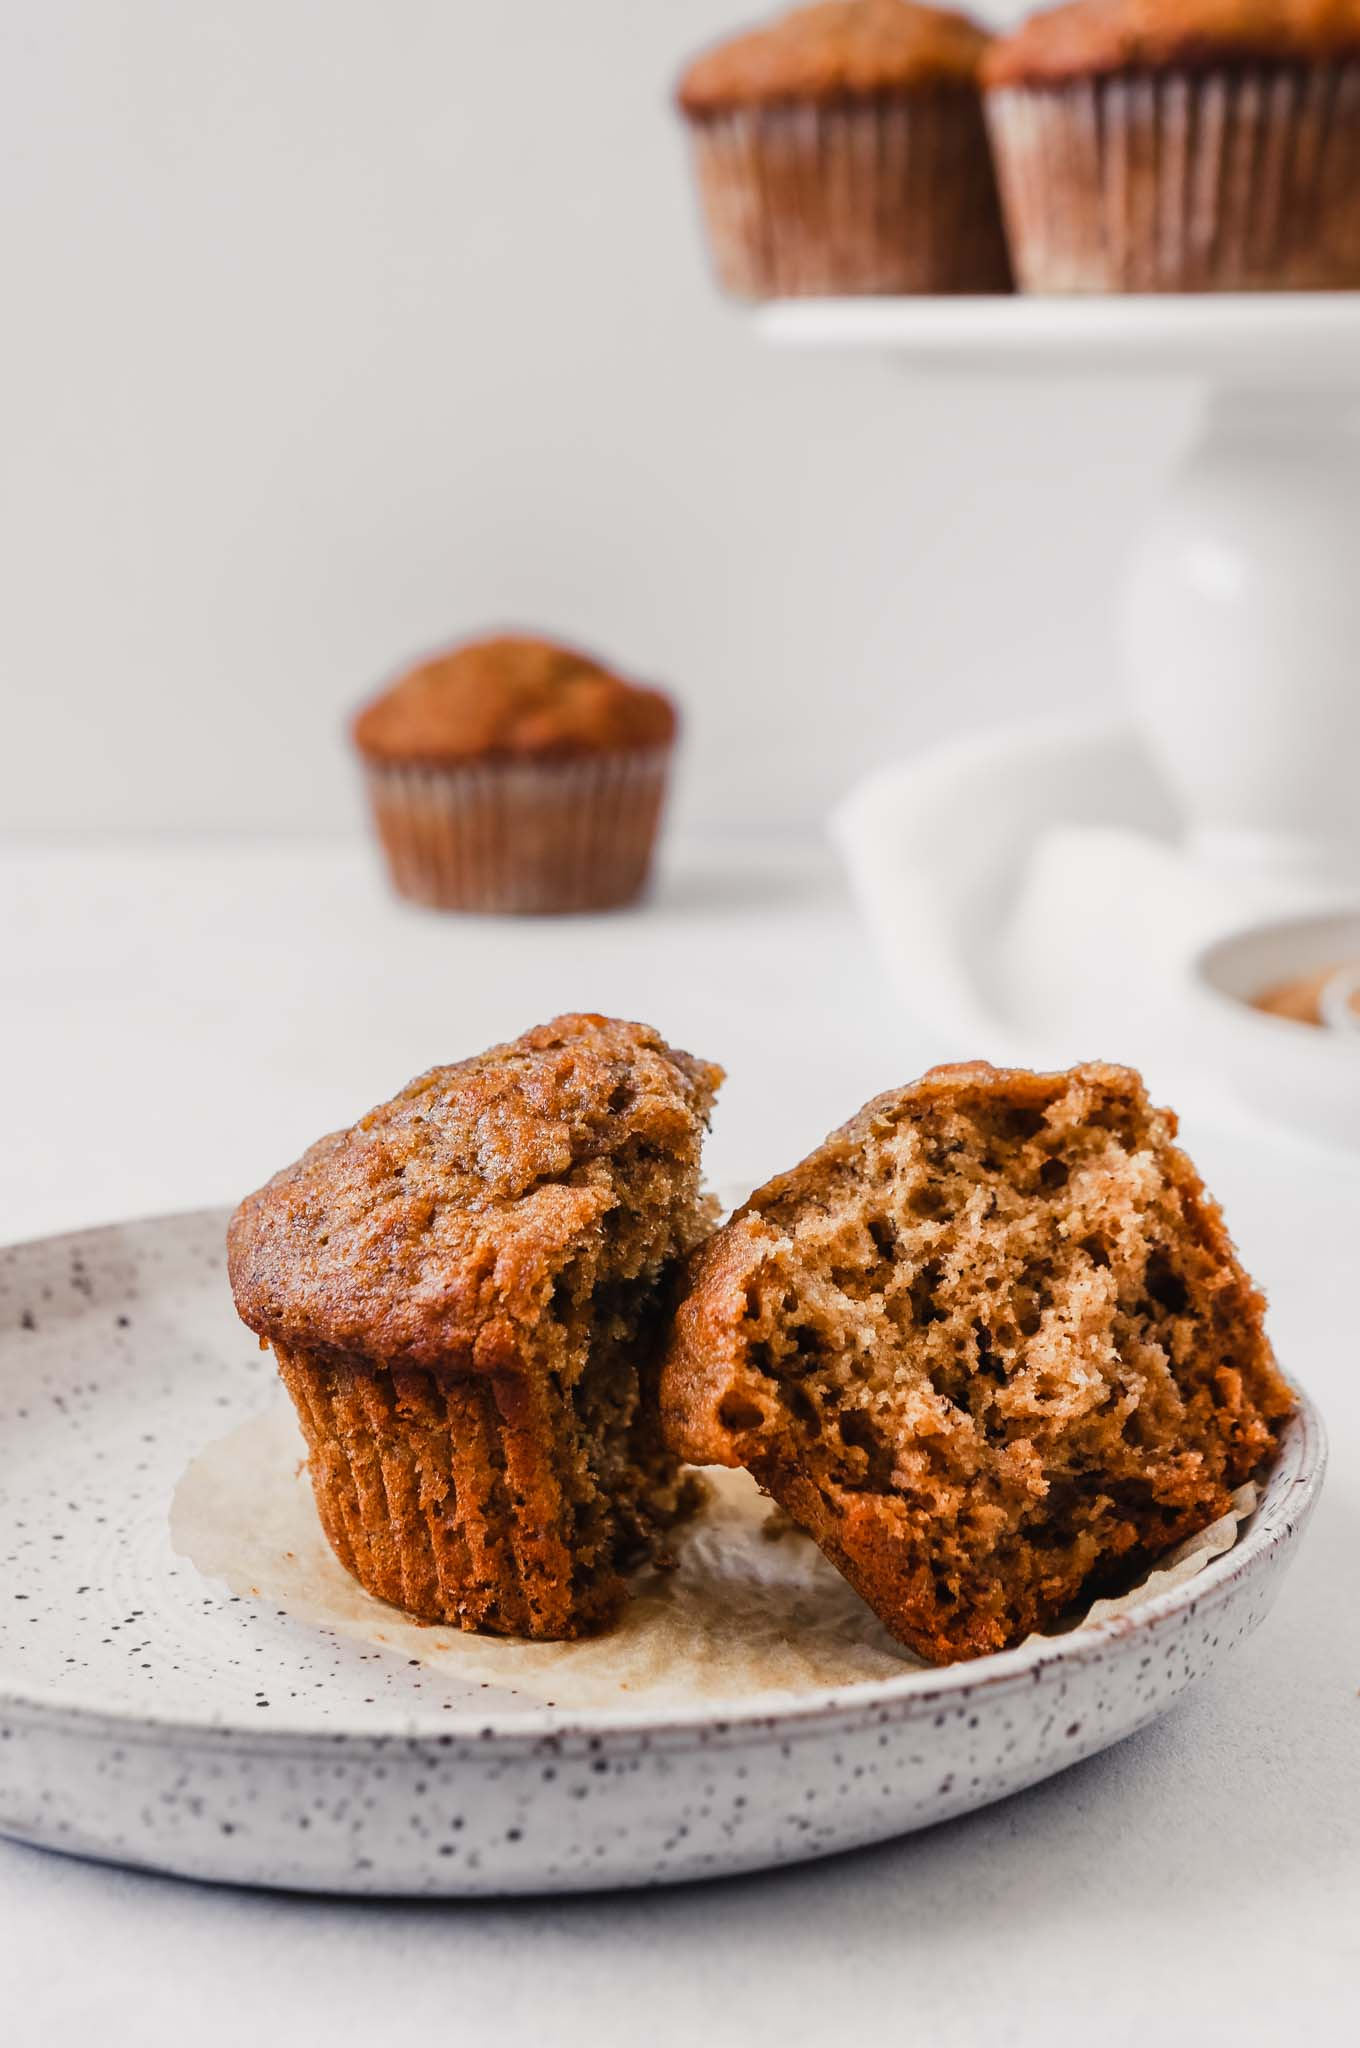 Photograph of banana bread muffin on a plate